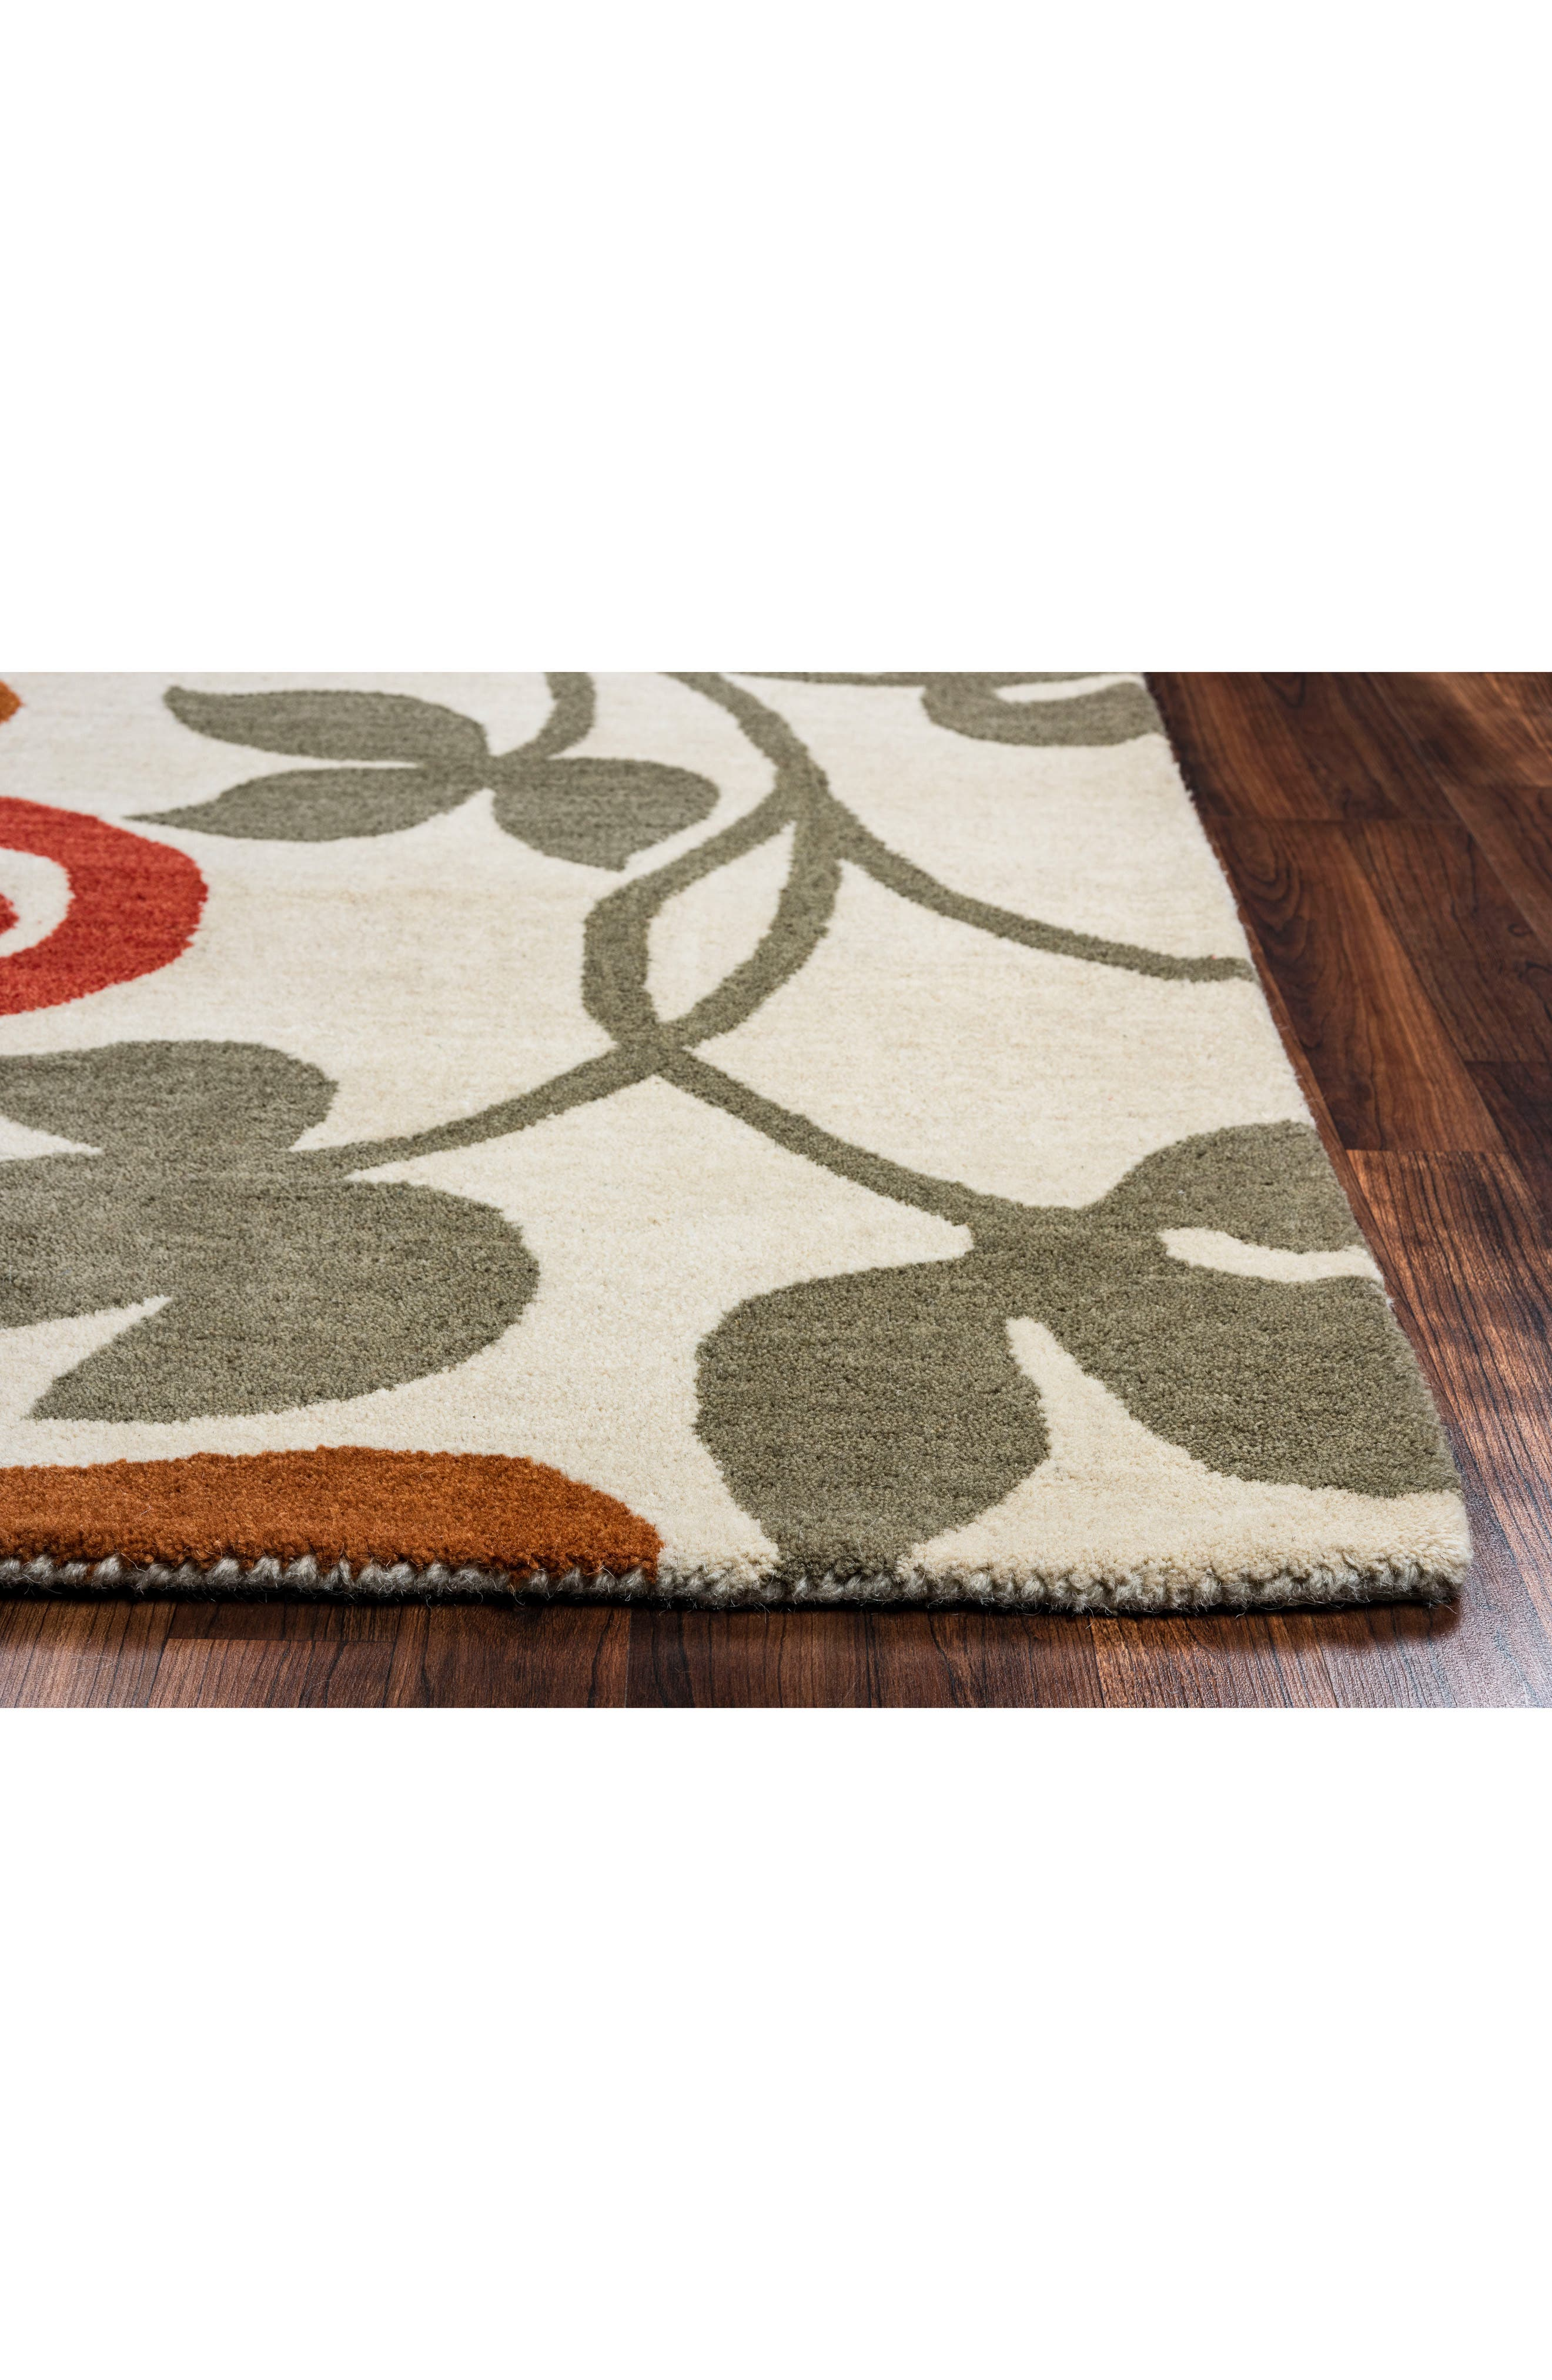 Zoe Hand Tufted Wool Area Rug,                             Alternate thumbnail 5, color,                             900